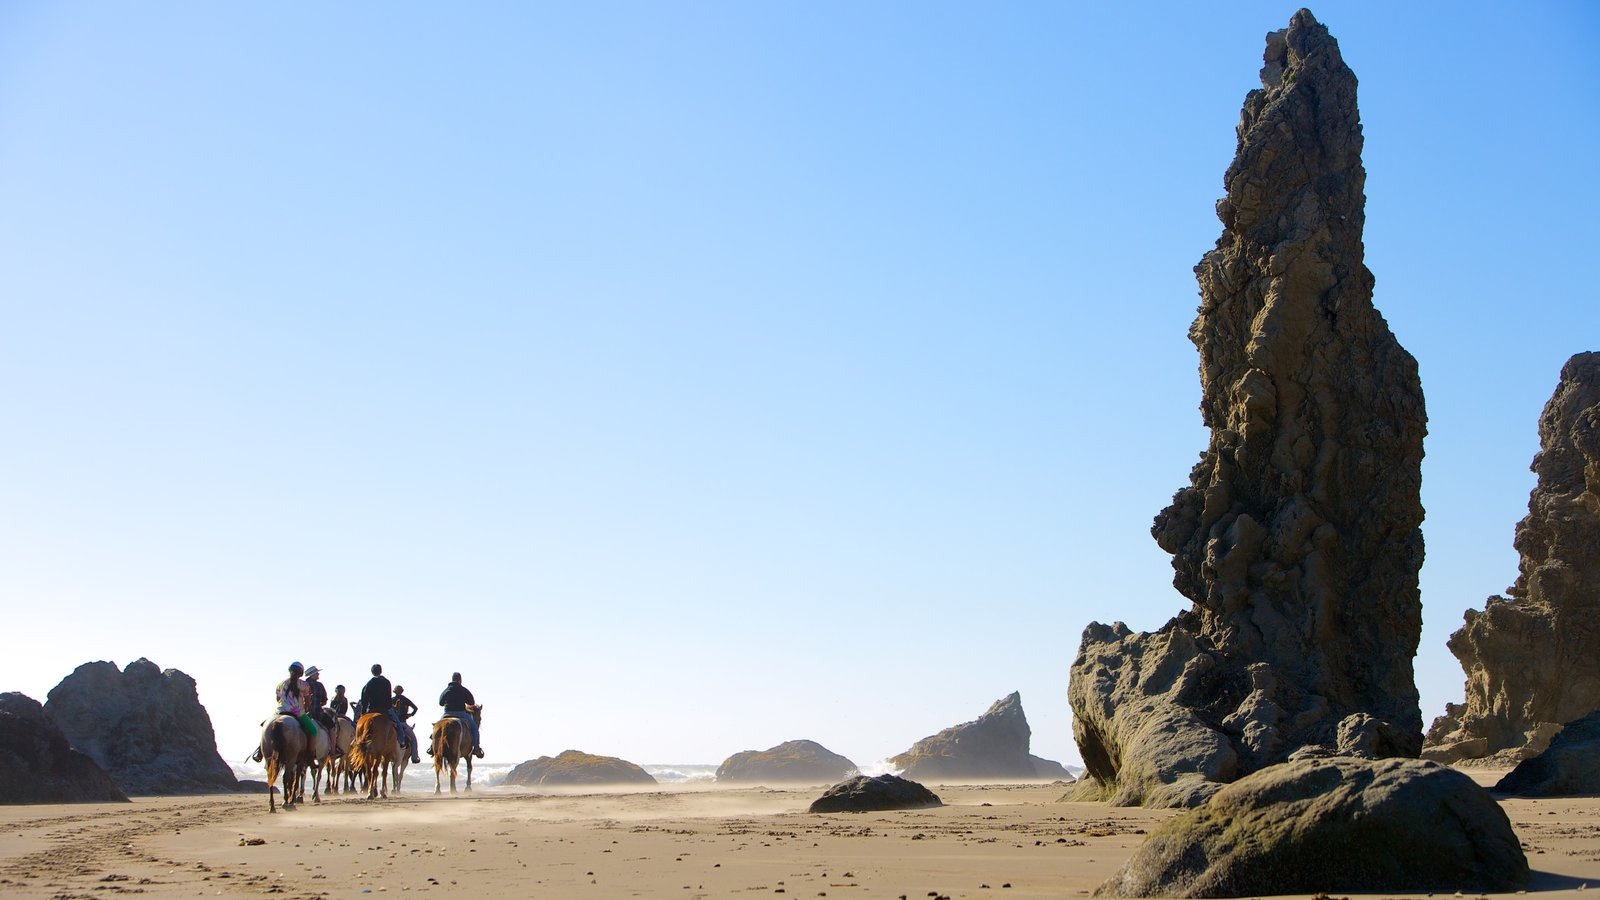 Bandon Beach which includes land animals and horseriding